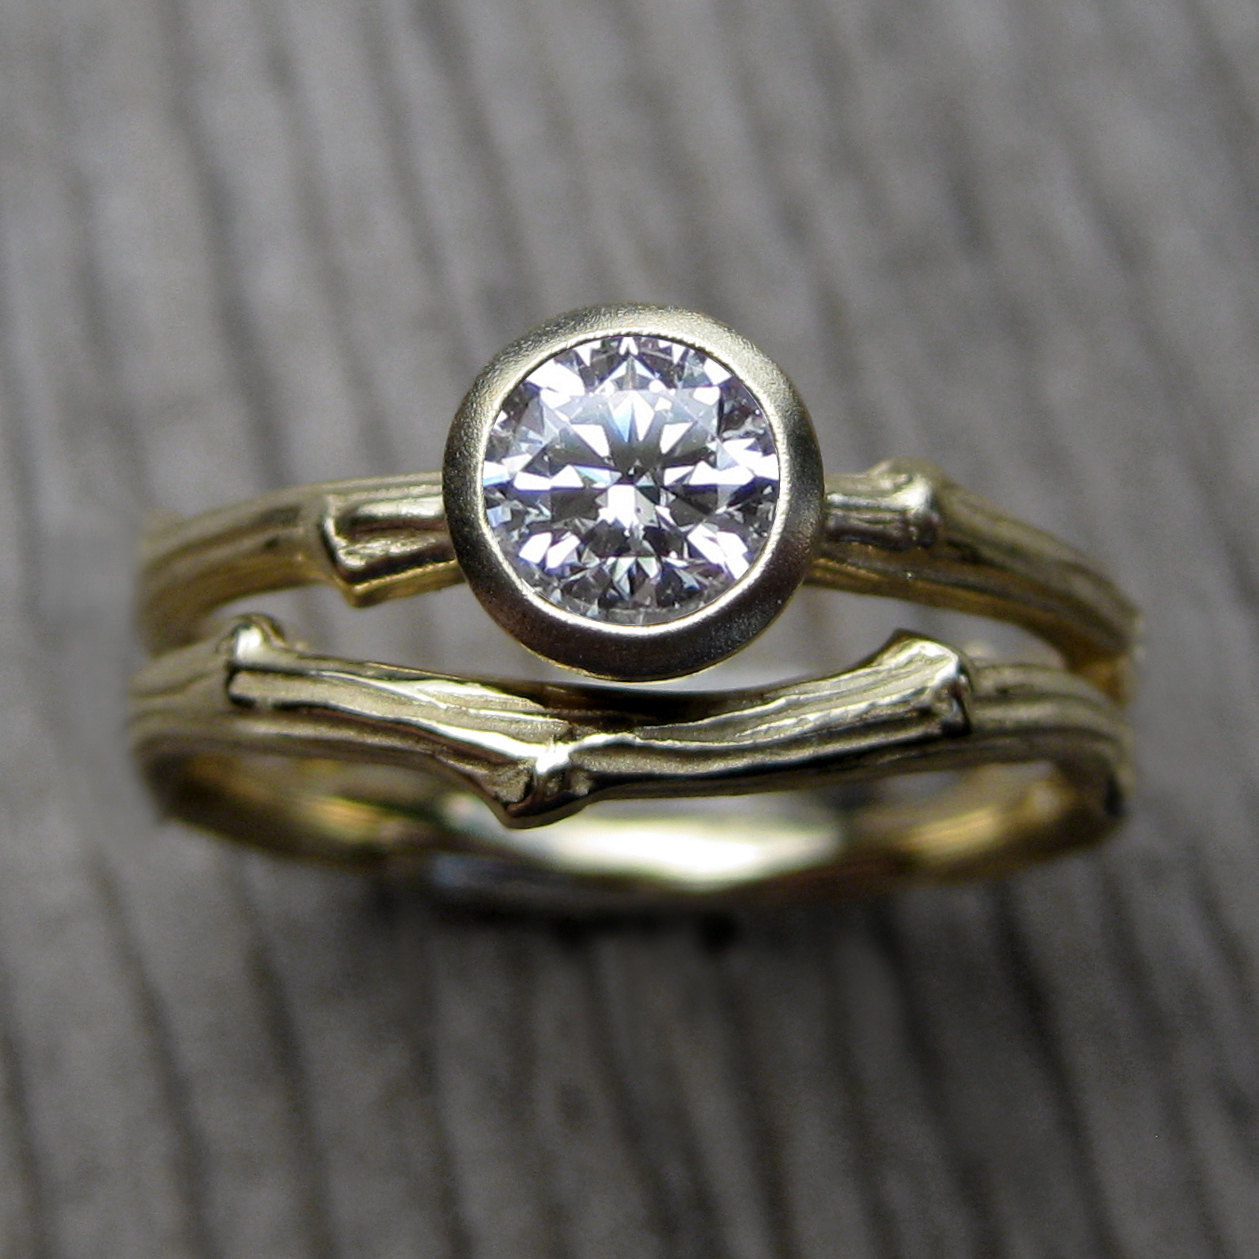 twig engagement ring by kristin coffin   Nature Inspired Wedding Ideas   http://wp.me/p1g0if-x0y